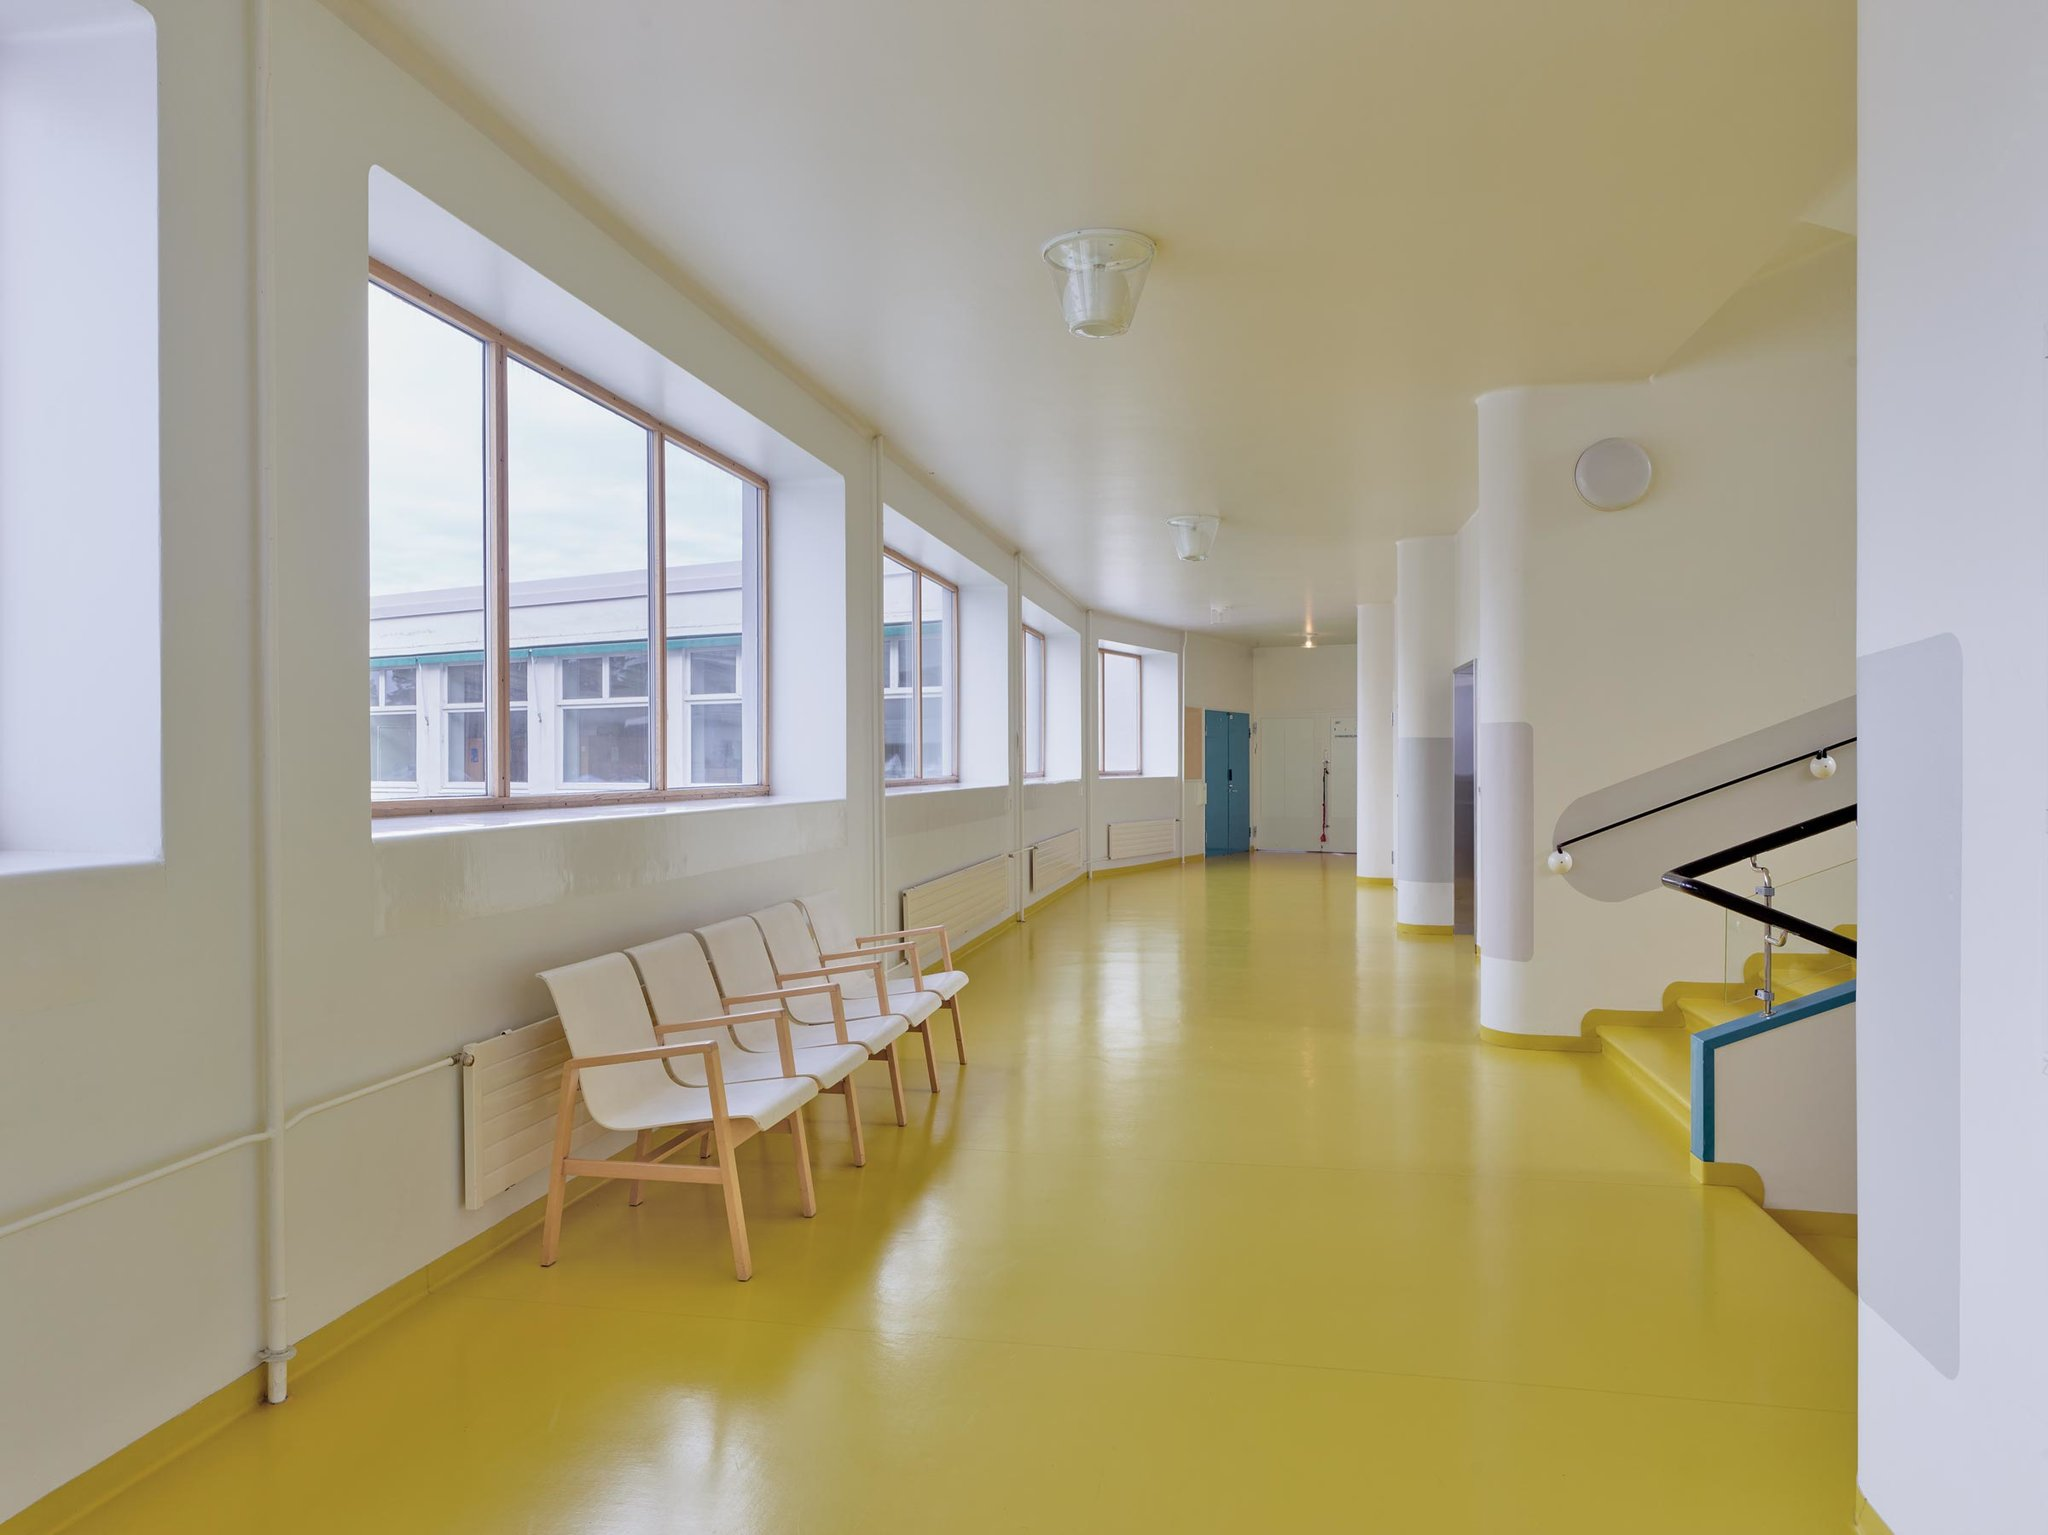 In Search of Lost Time in Europes Sanatoriums  The New